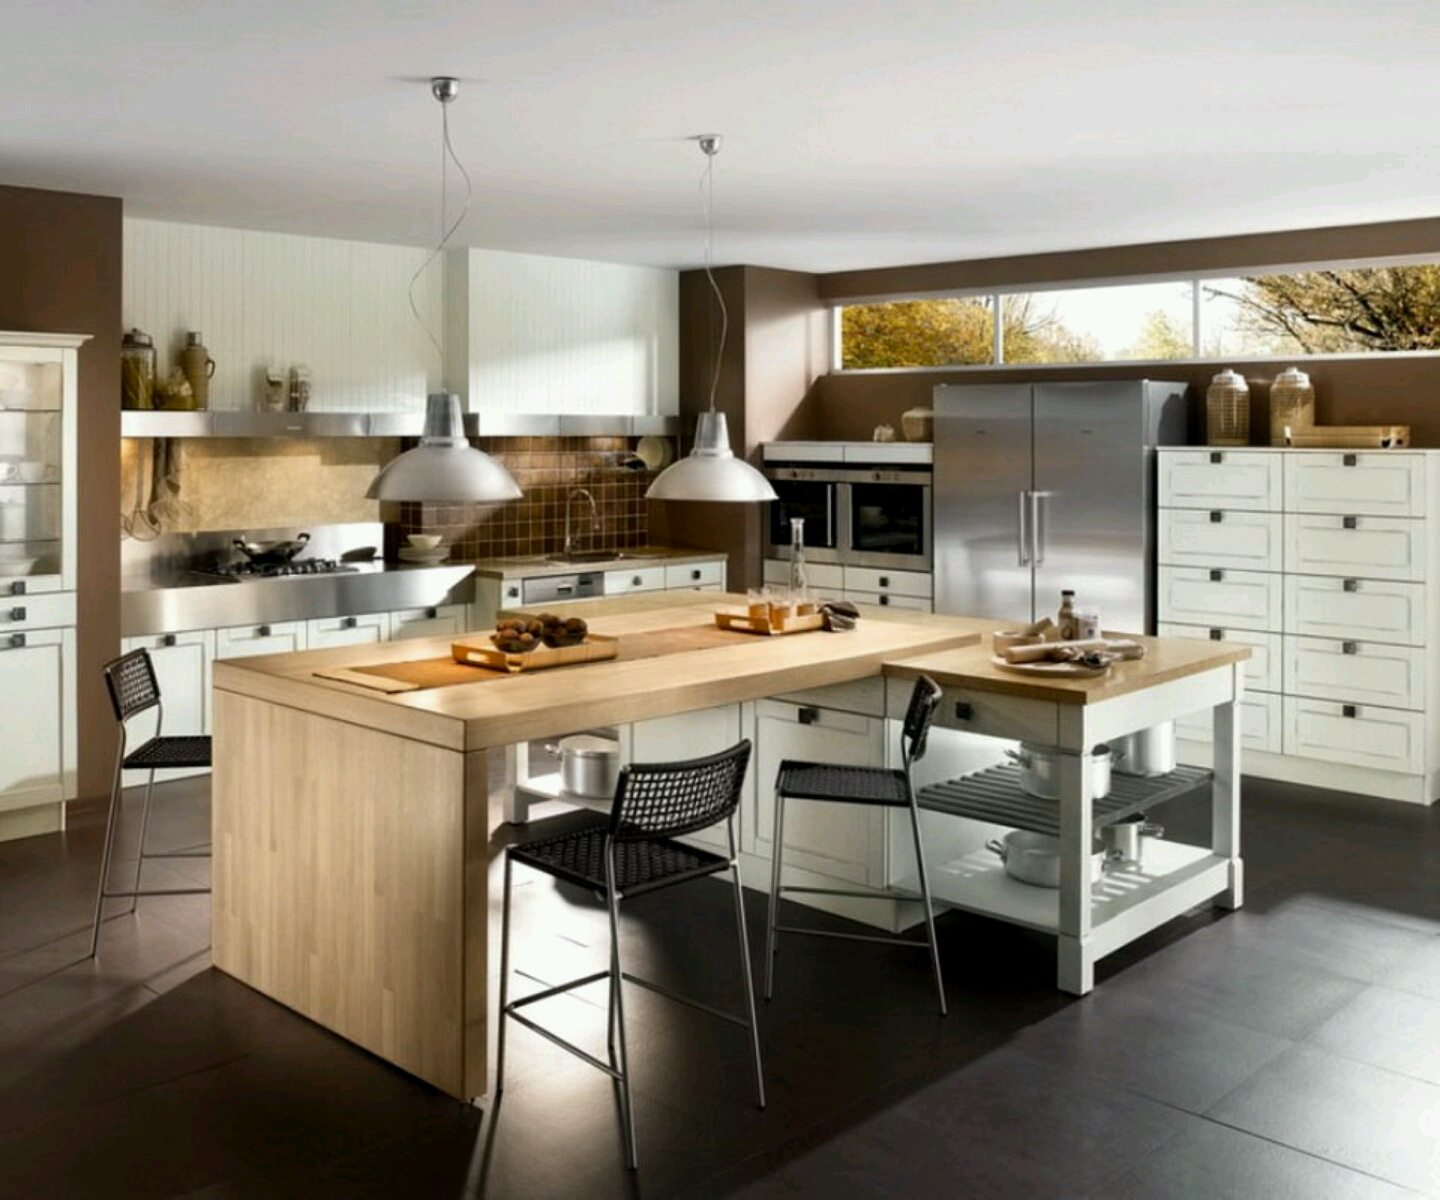 New home designs latest modern kitchen designs ideas Amenagement cuisine